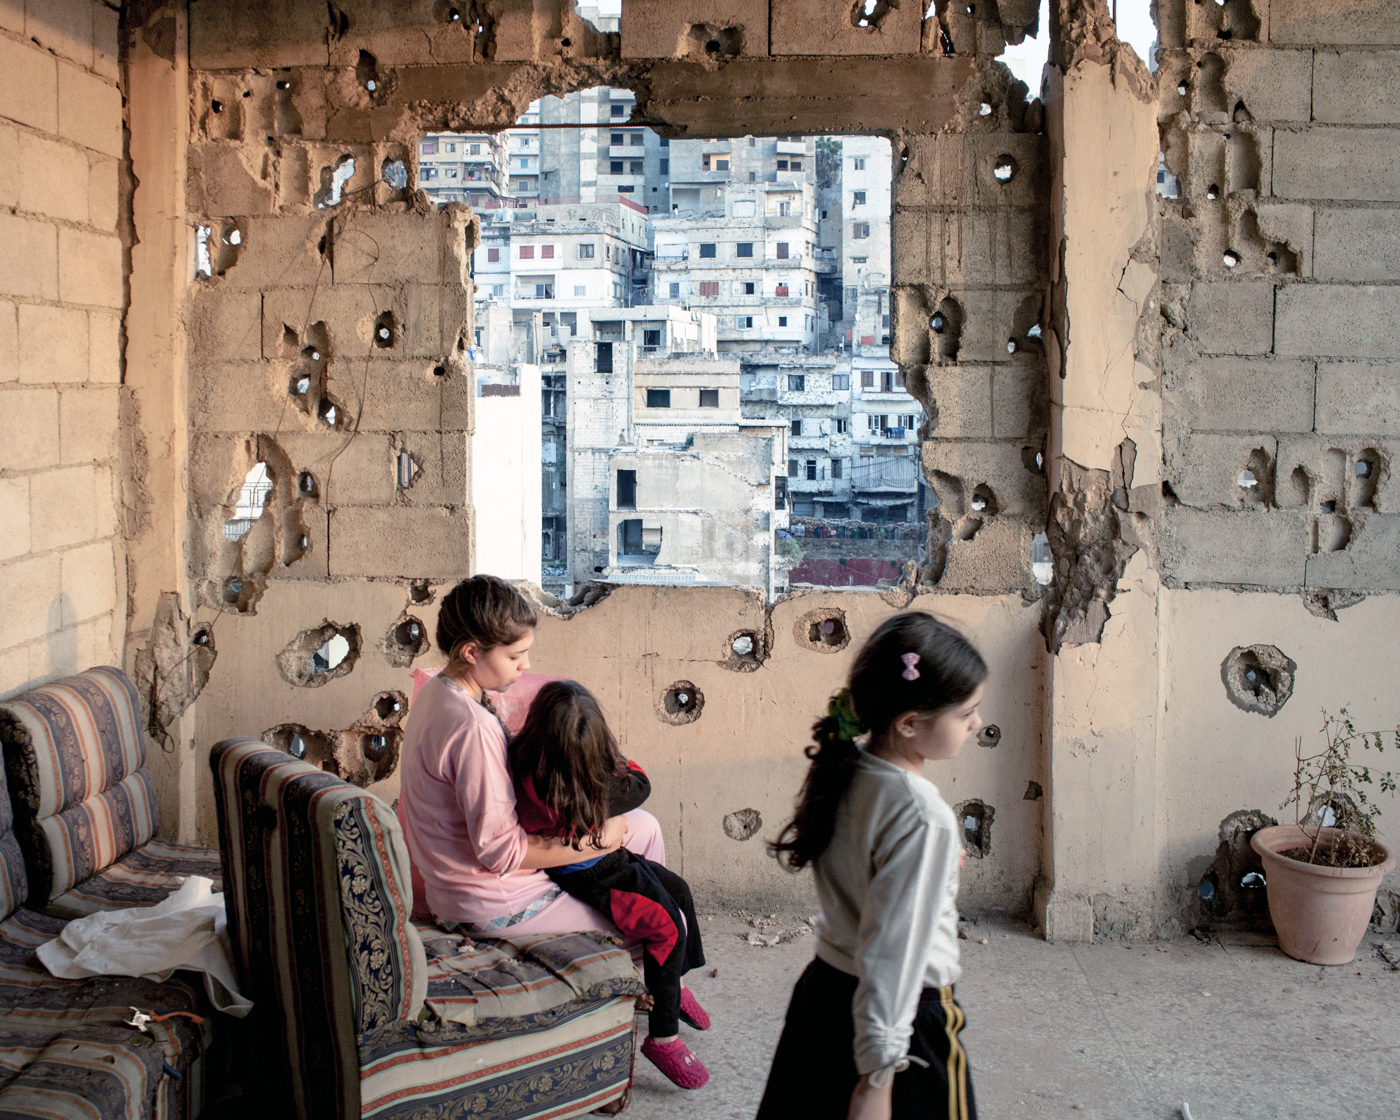 The interiors of an apartment on Syria streets destroyed by the fights between Sunnis and Shiite. Tripoli, Lebanon, Nov. 2013.